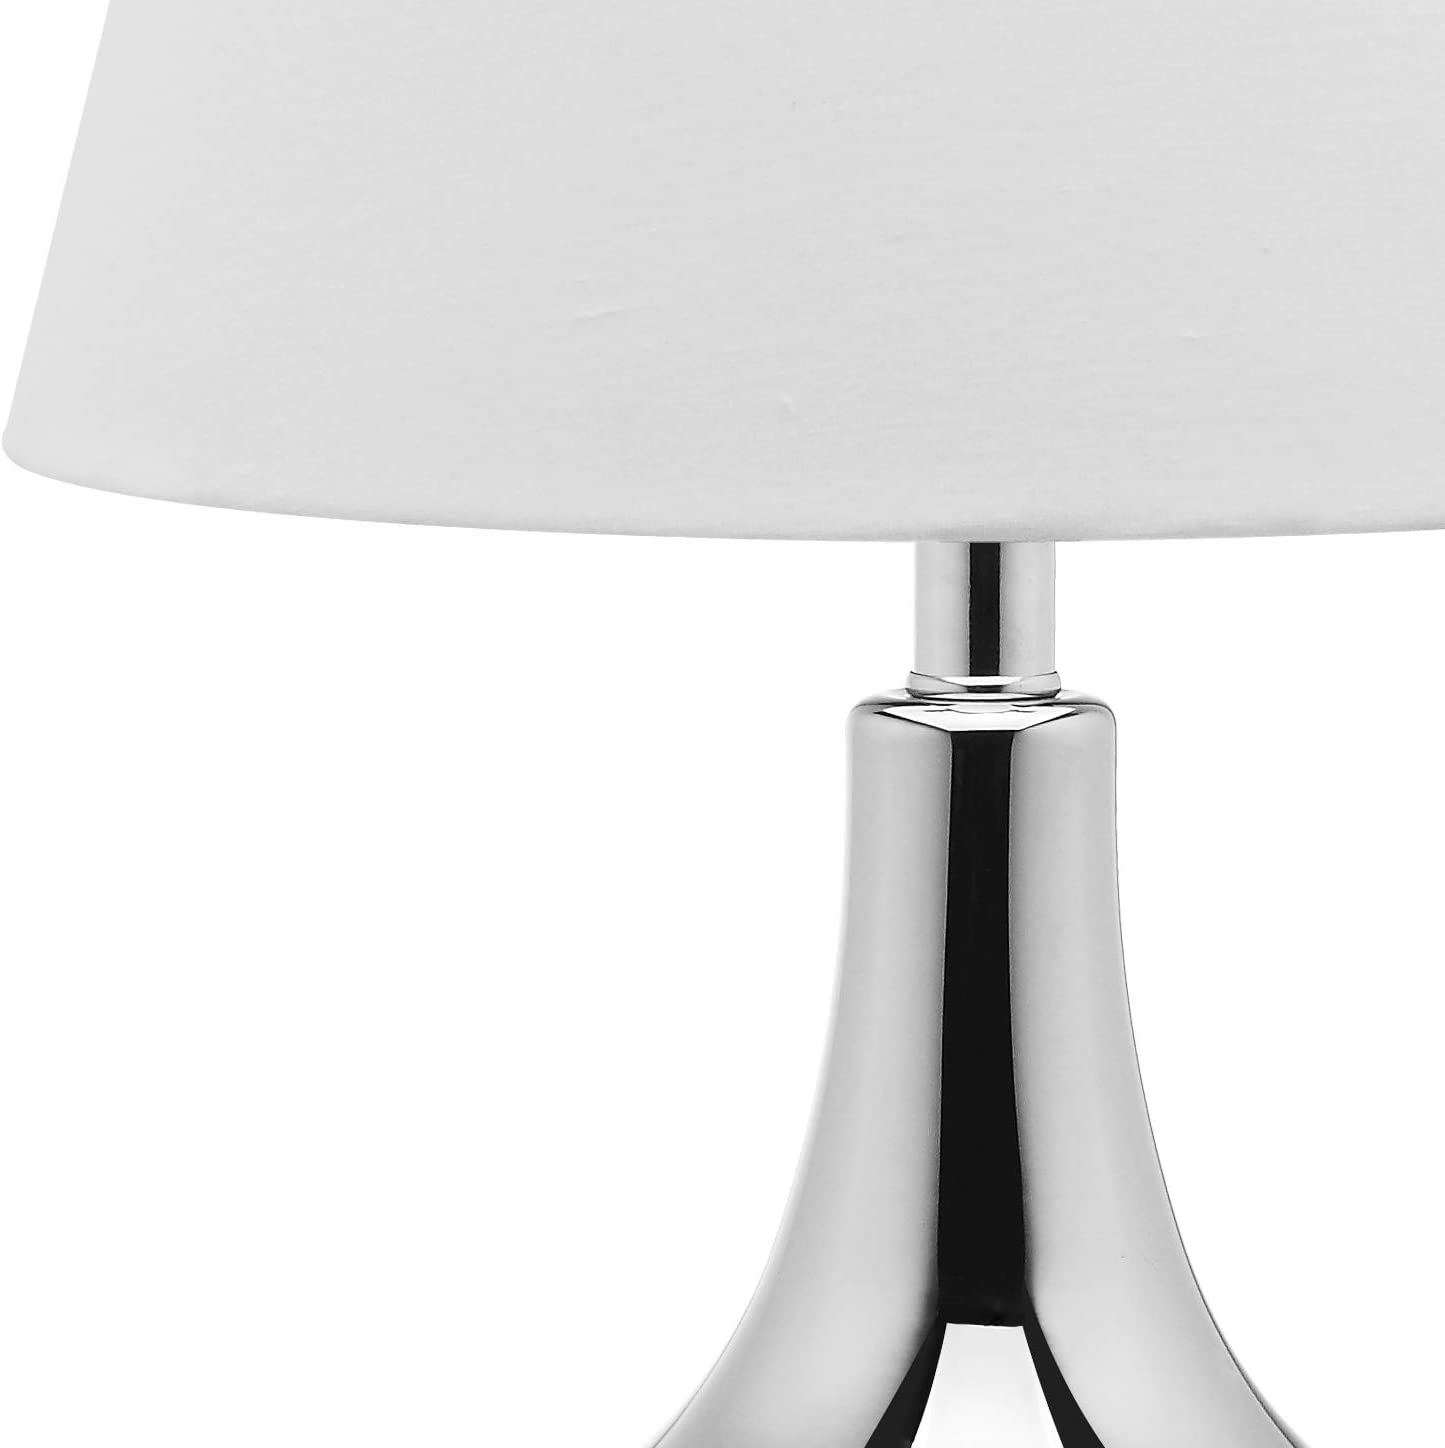 Safavieh Lighting Collection Amy Gourd Glass Table Lamp, Silver, Set of 2 by Safavieh: Amazon.es: Hogar